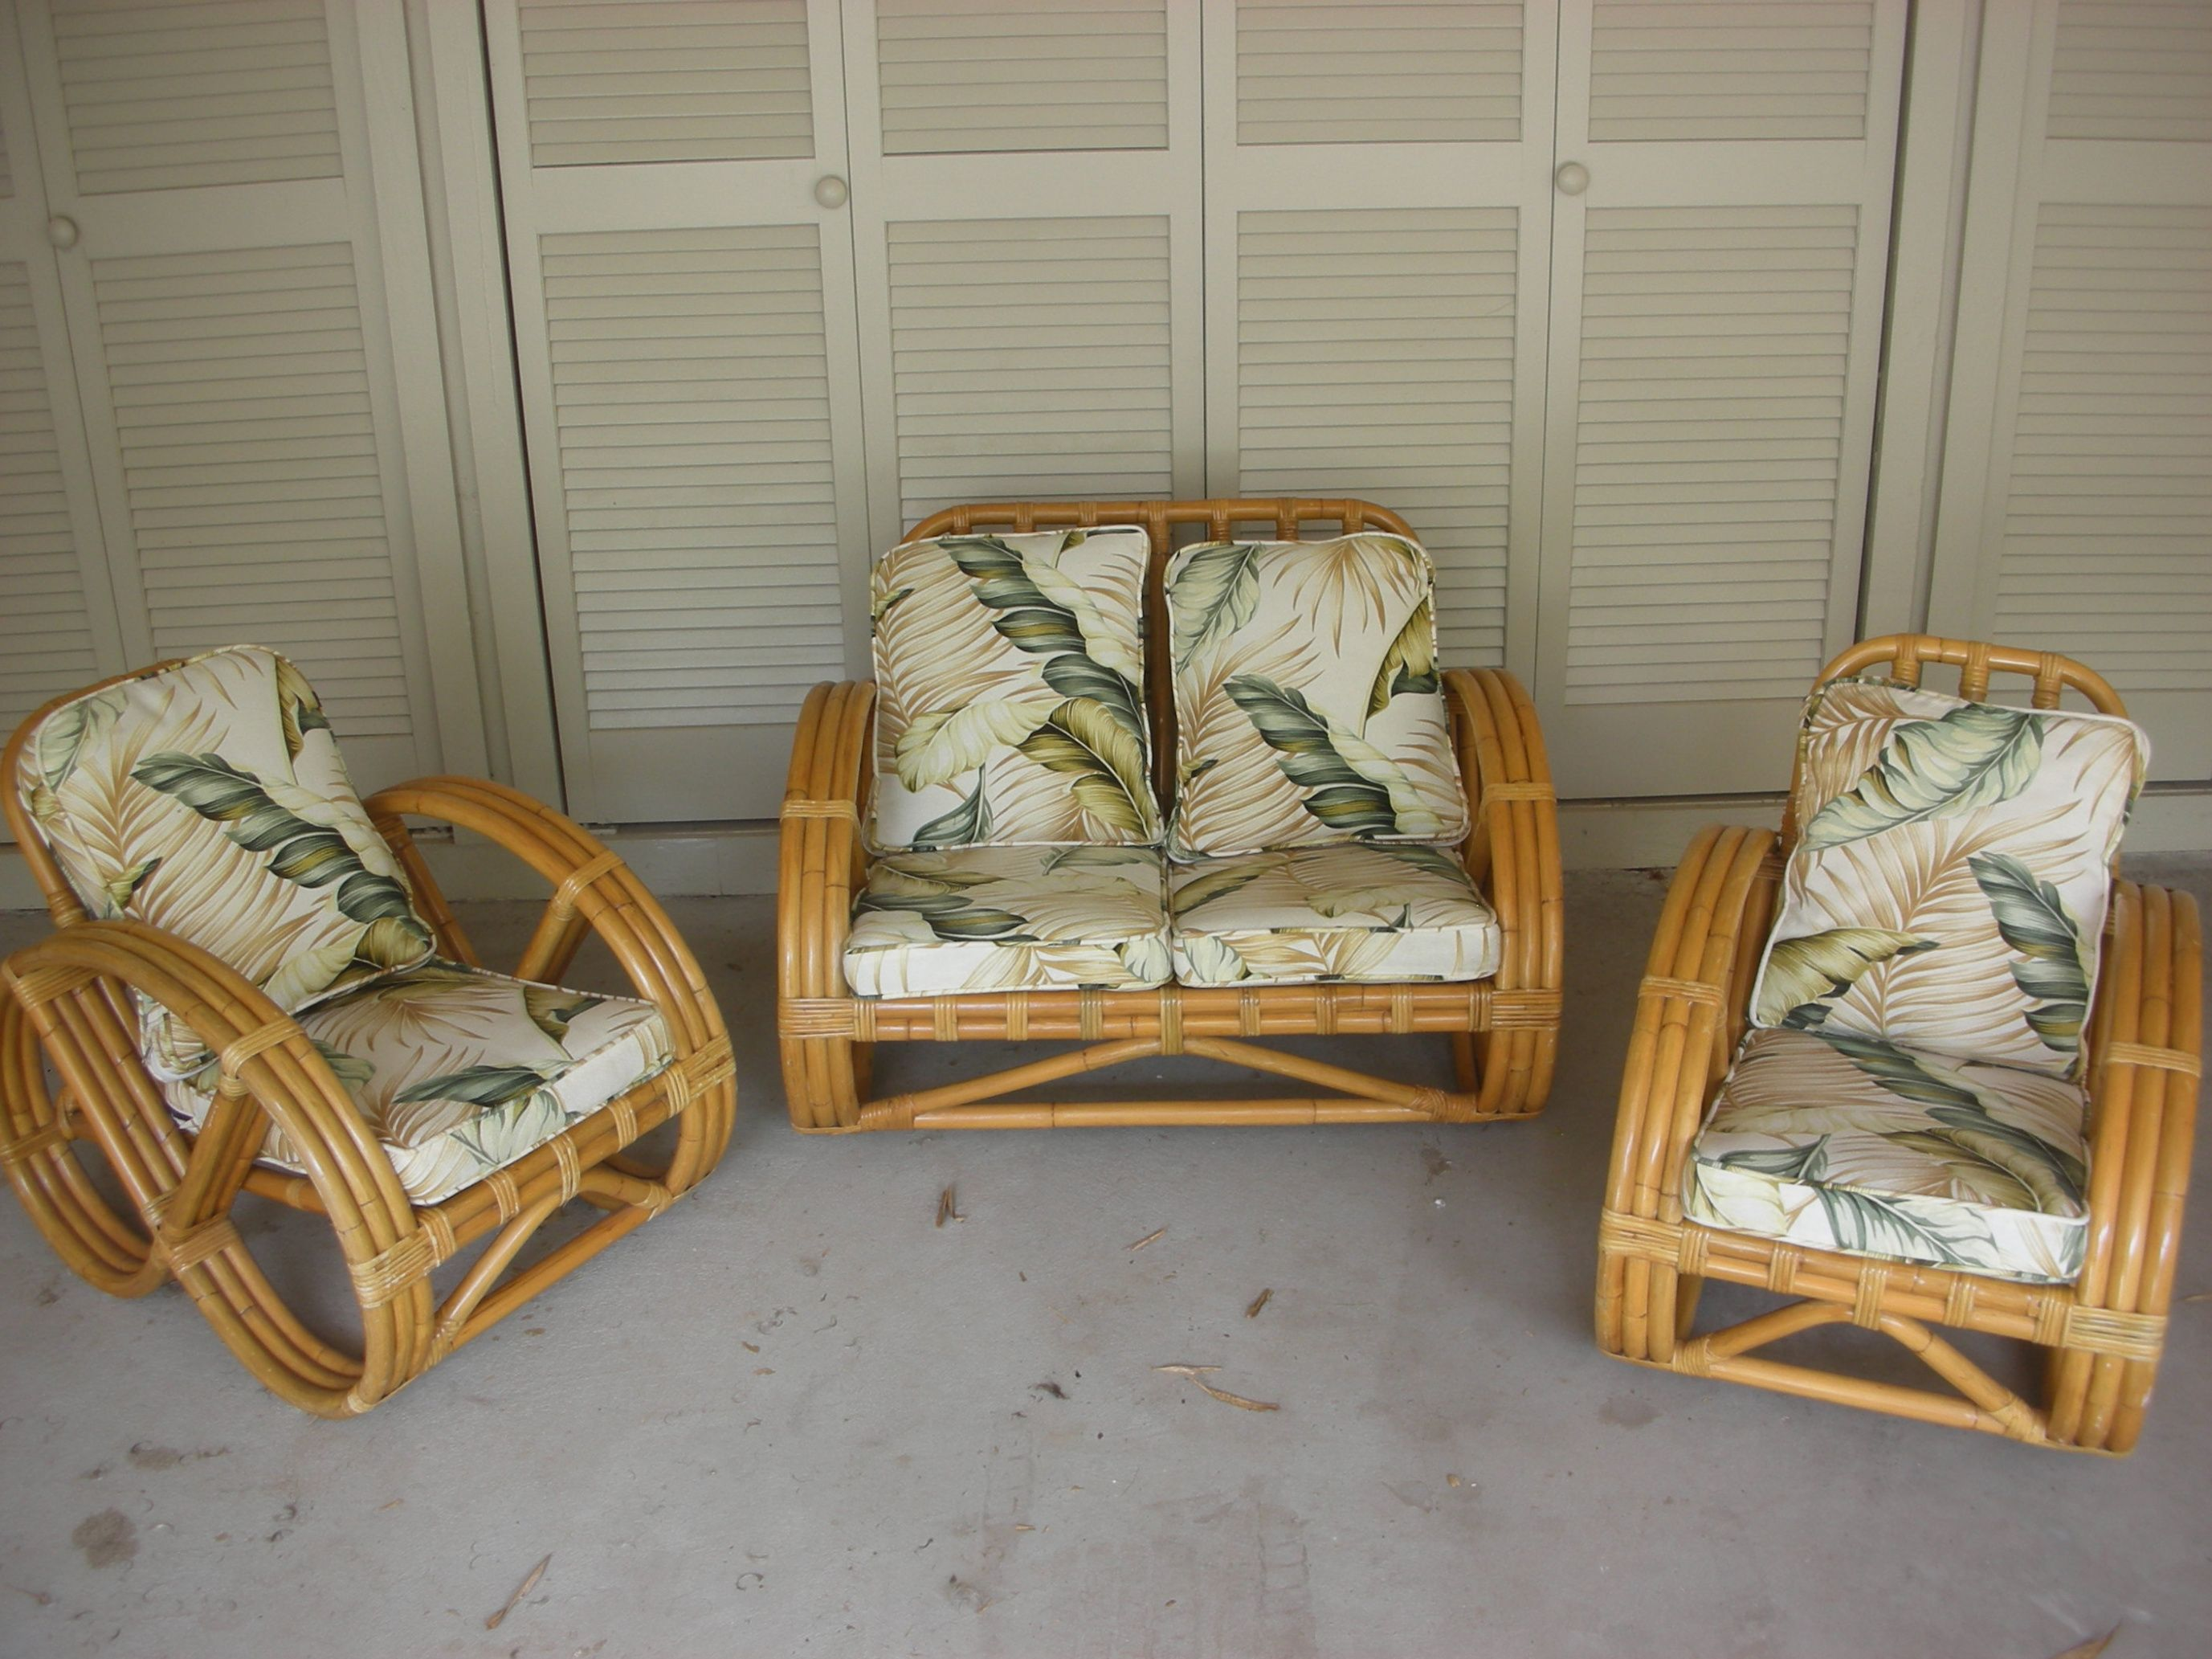 Pin By Annora On Home Interior Outdoor Wicker Furniture